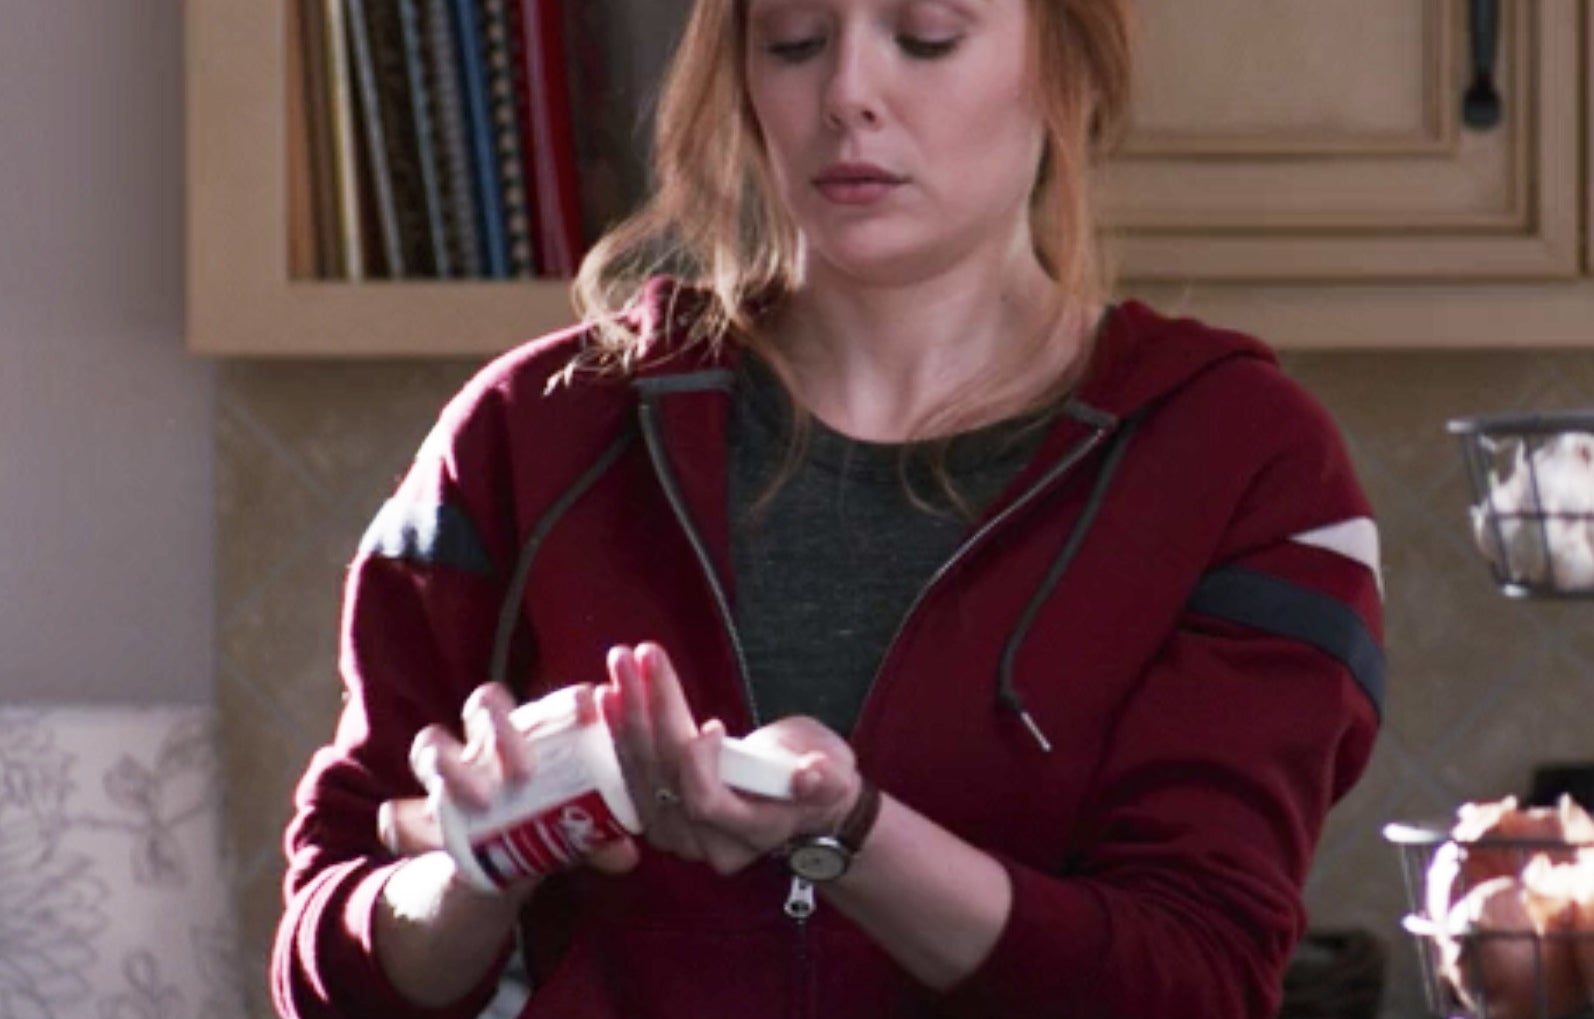 Wanda pouring a pill from a bottle into her hand